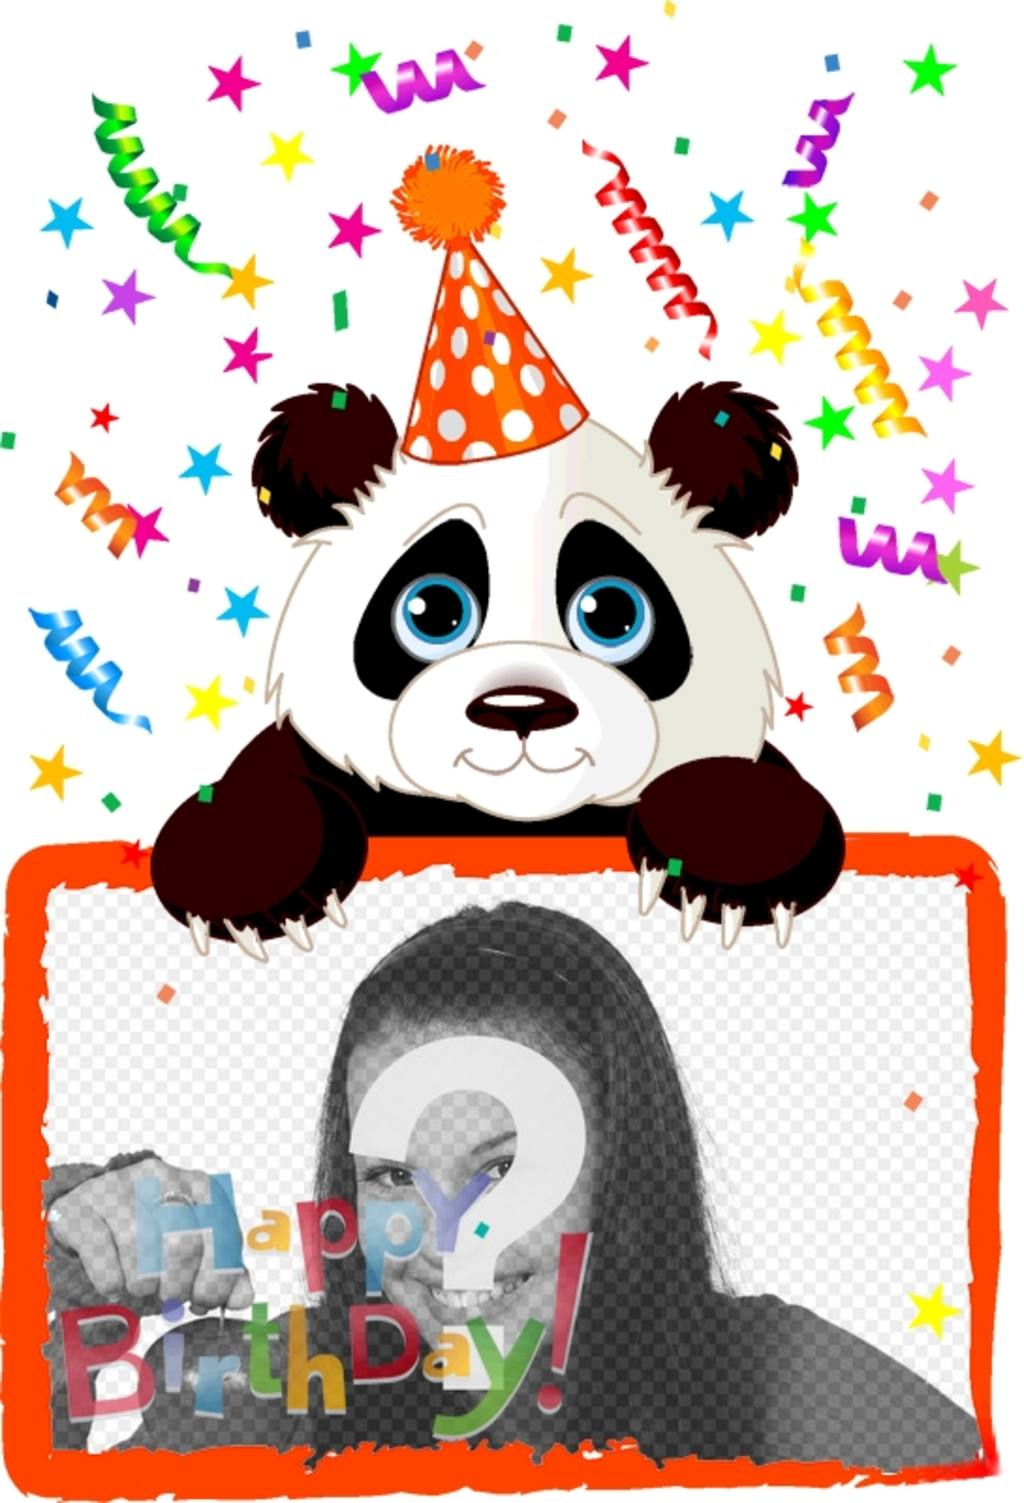 Birthday greeting postcard with a panda